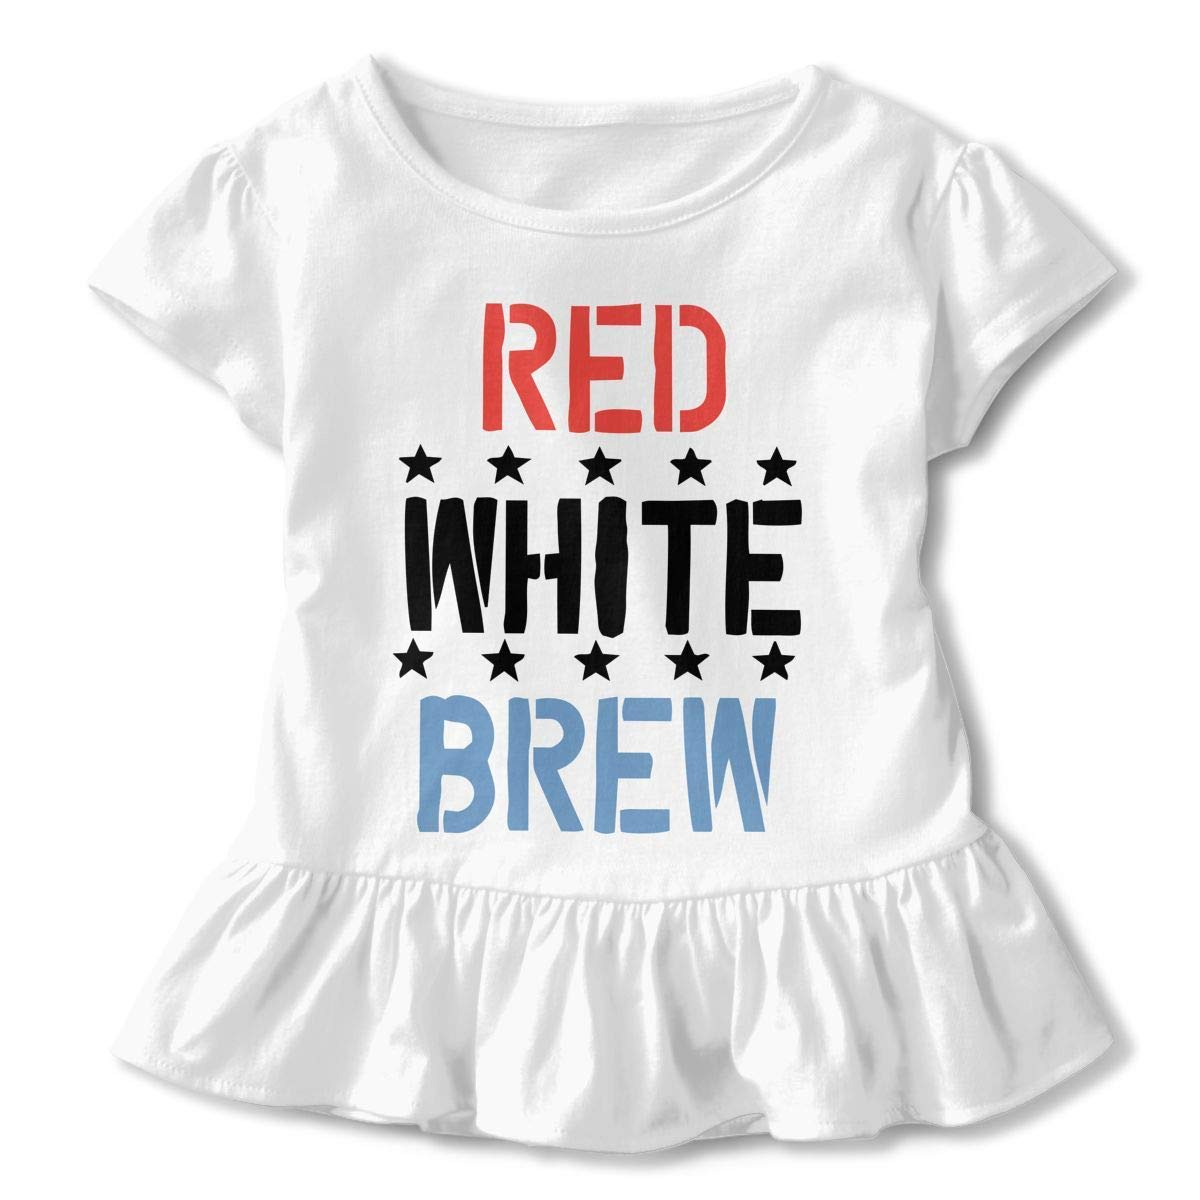 Girls Short Sleeve Red White /& Brew Beer Shirts 2-6T Casual Blouse Clothes with Flounces